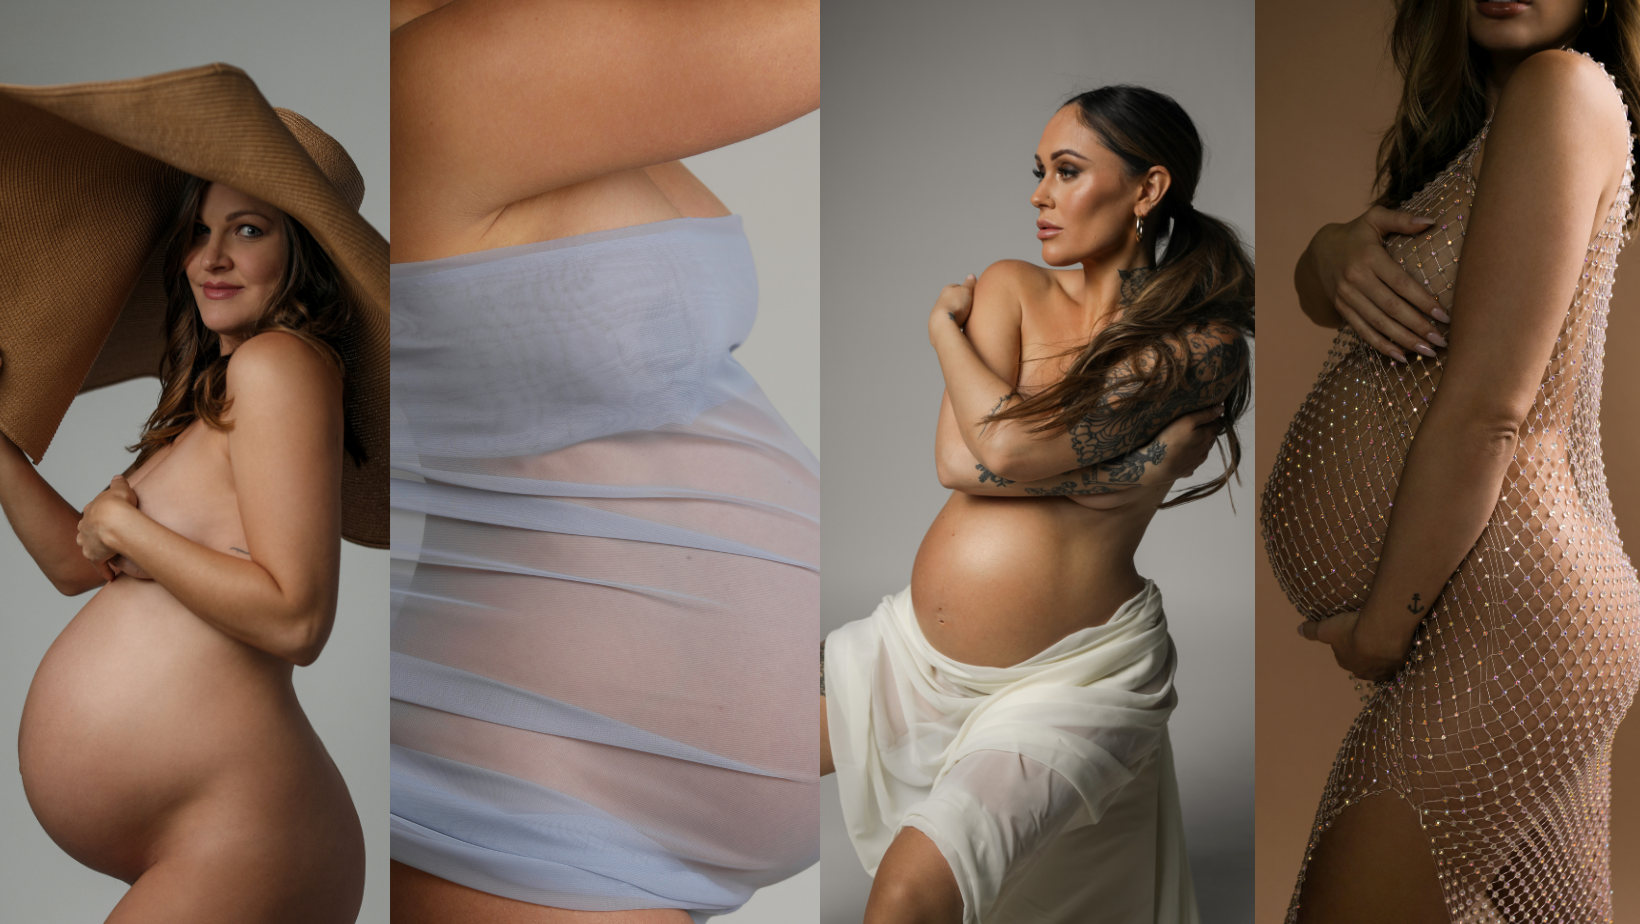 Maternity Photoshoots: What to Consider